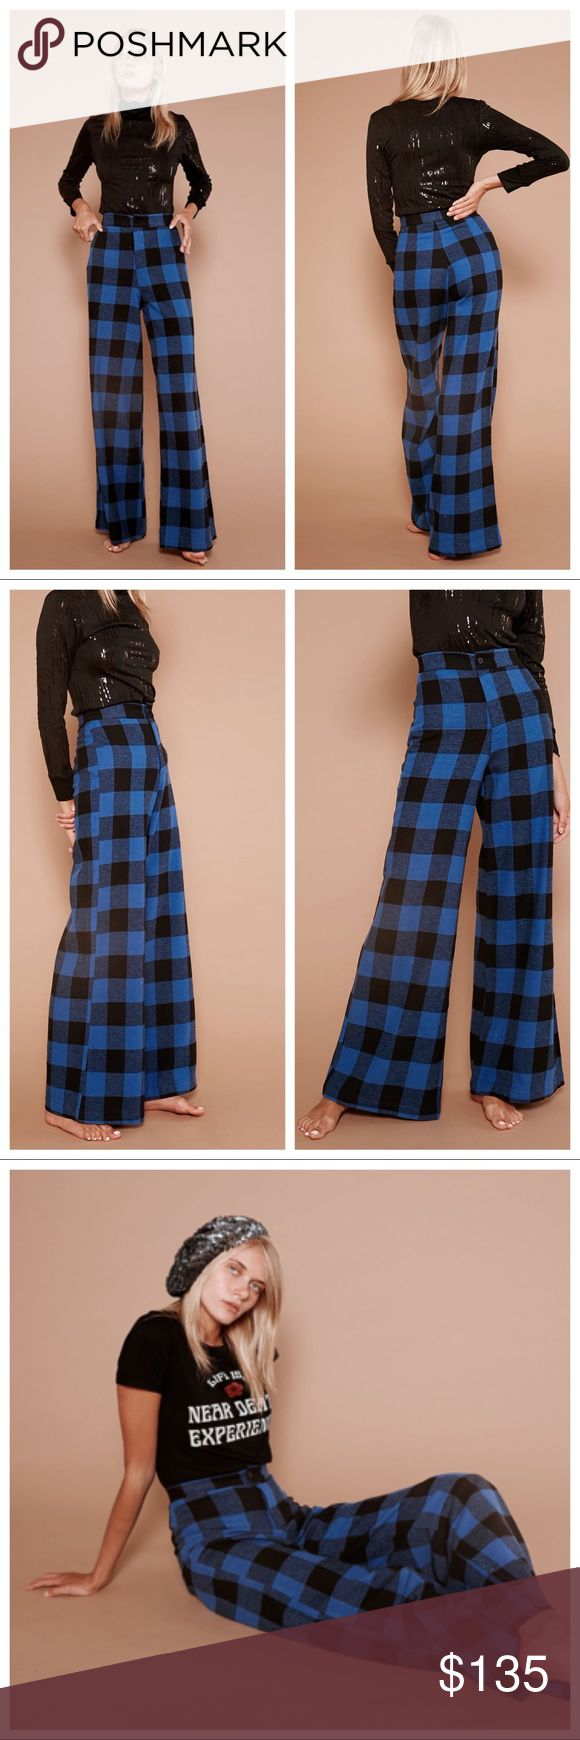 "Sugarhigh Lovestoned, plaid Woody wide leg pants Brand new, no tags. Only tried on.  Channel your inner Woody Allen and rock these super soft plaid pants in a major way. Model is wearing size: 0"" Made of super soft 100% cotton flannel Sewn in California.   HIGH WAIST: measure the smallest part of your waist between your ribs and your hips. ✿ Size 4 